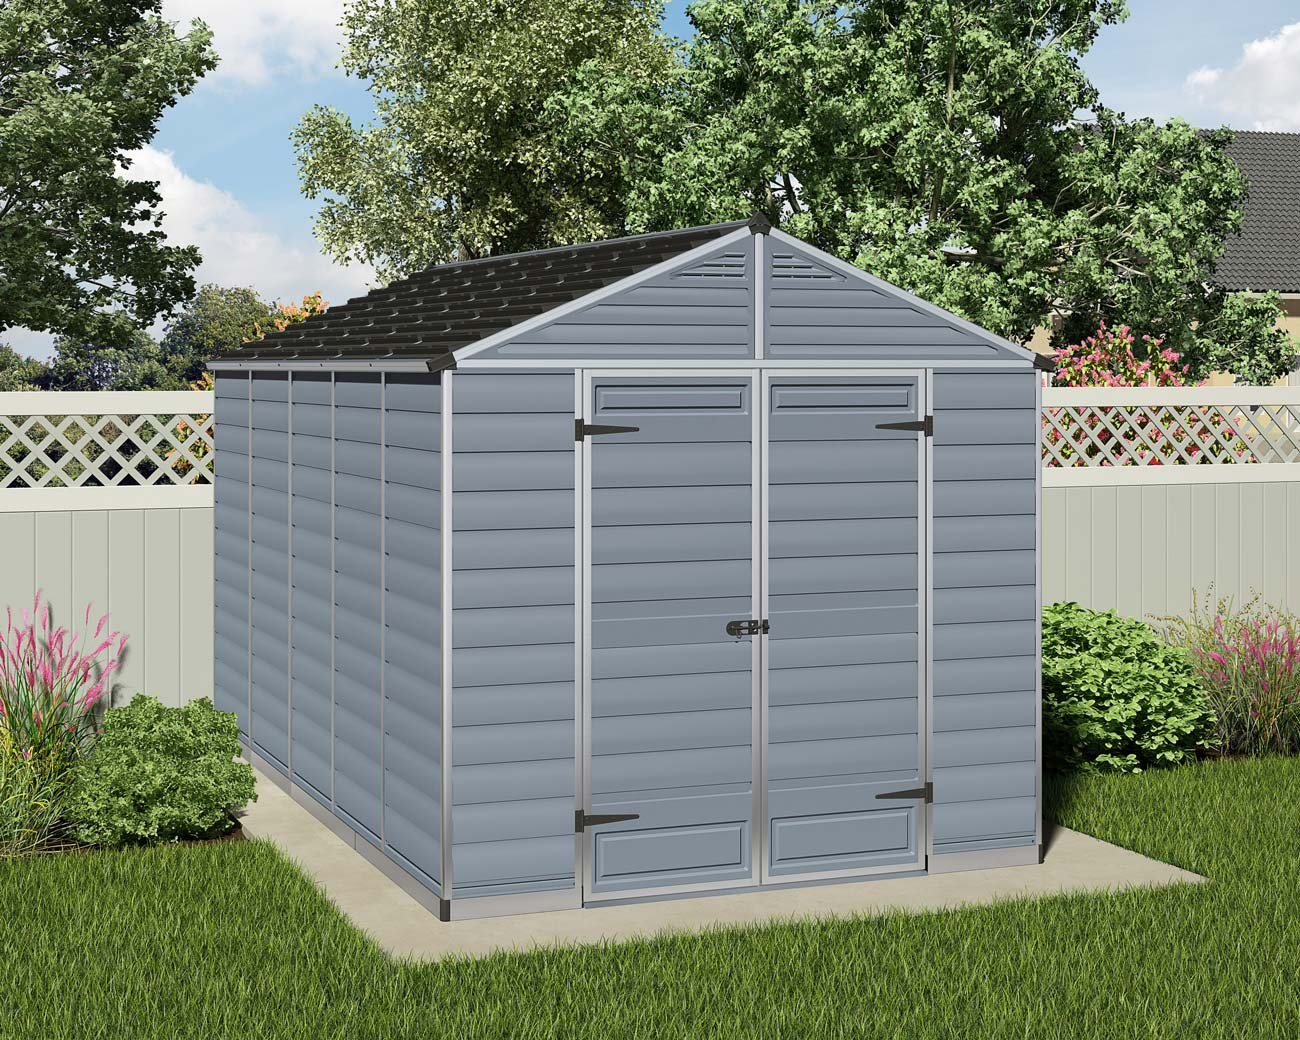 Reviews maze skylight 8x12 garden shed 1 999 for Garden shed 2 x 2